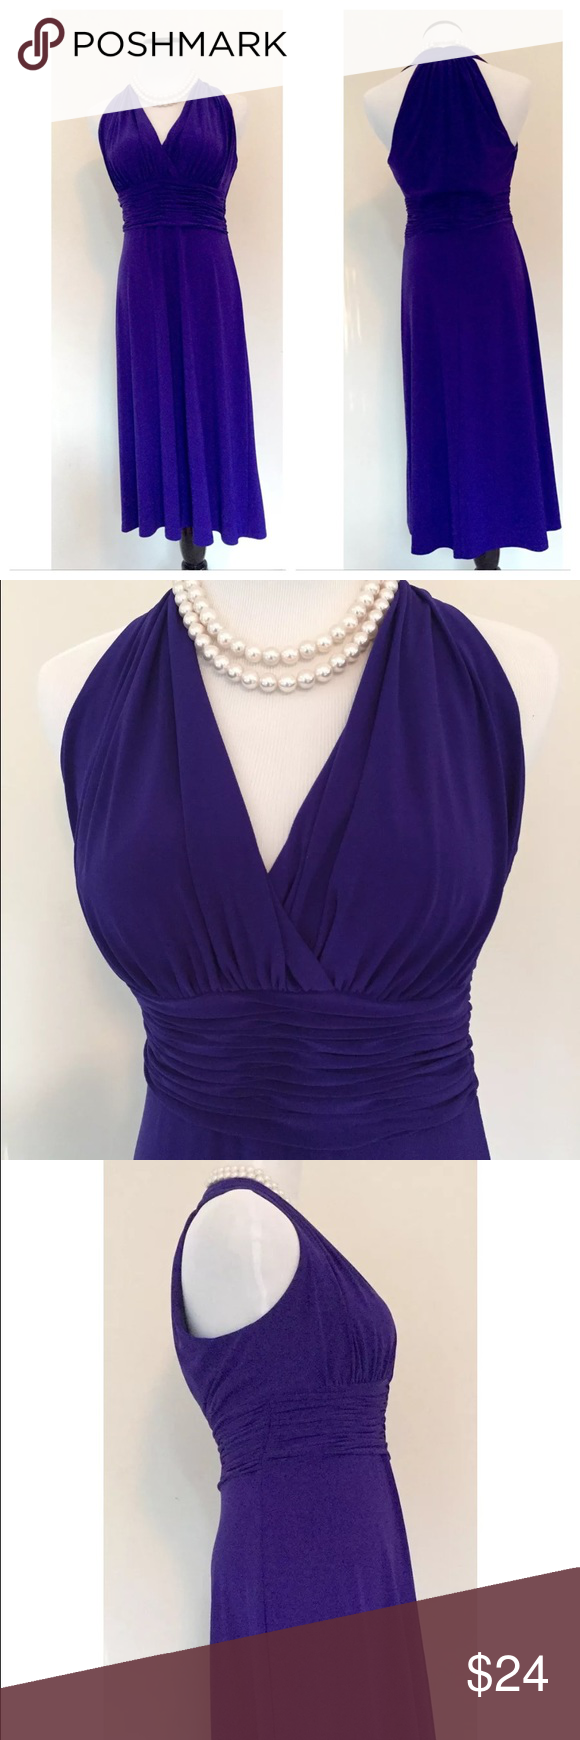 EVAN PICONE Purple Dress Measurements taken with garment laying ...